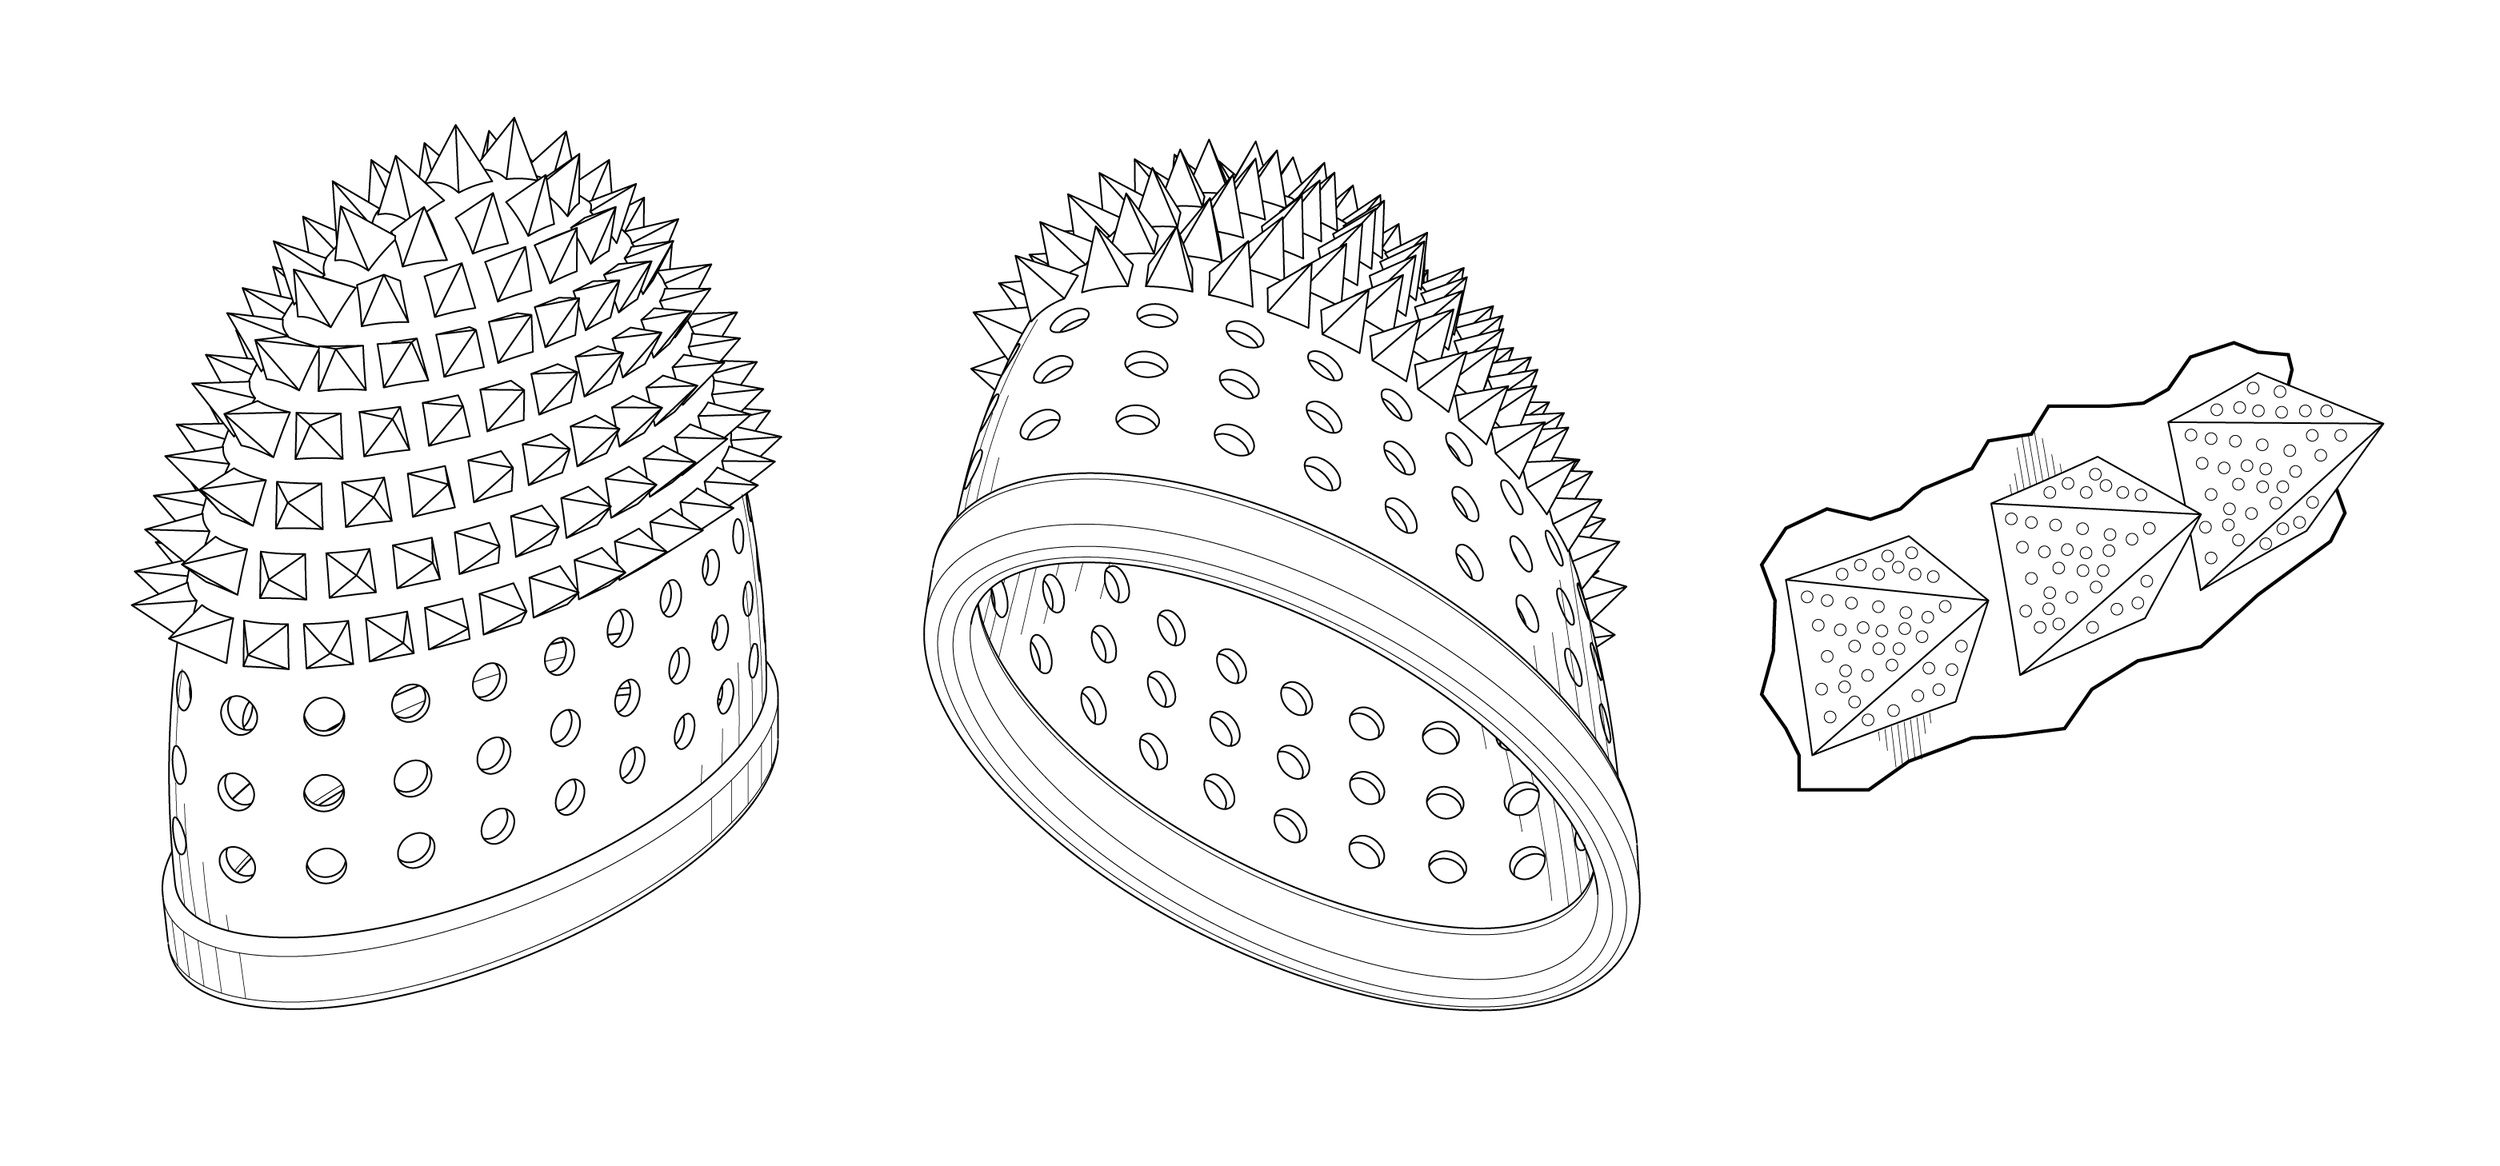 Illustrations of one of the embodiments.